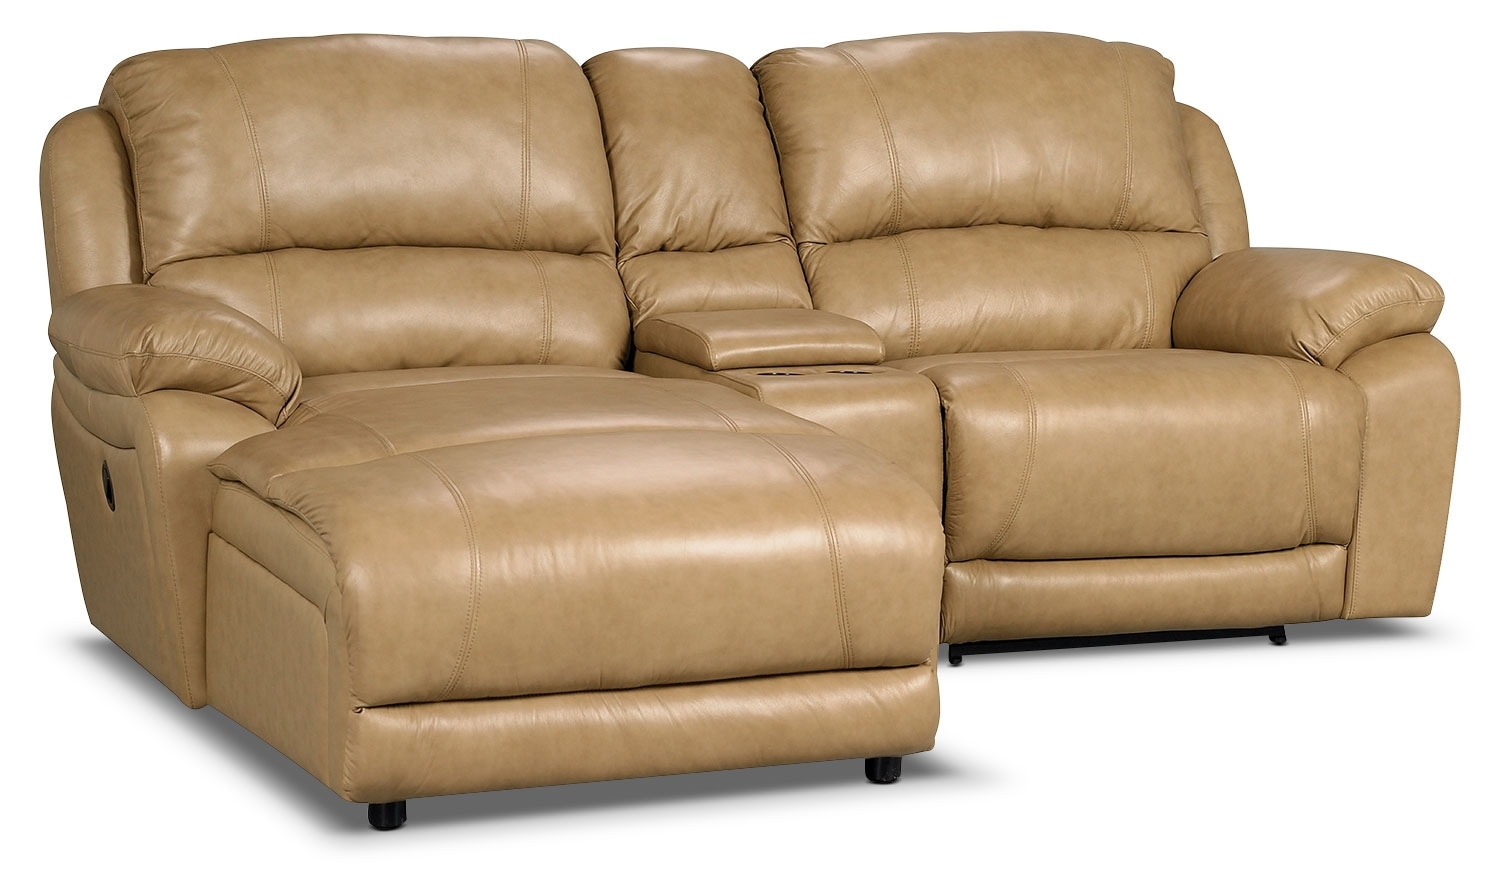 Marco Genuine Leather 3piece Sectional With Chaise, Power Recliner And  Console– Toffee